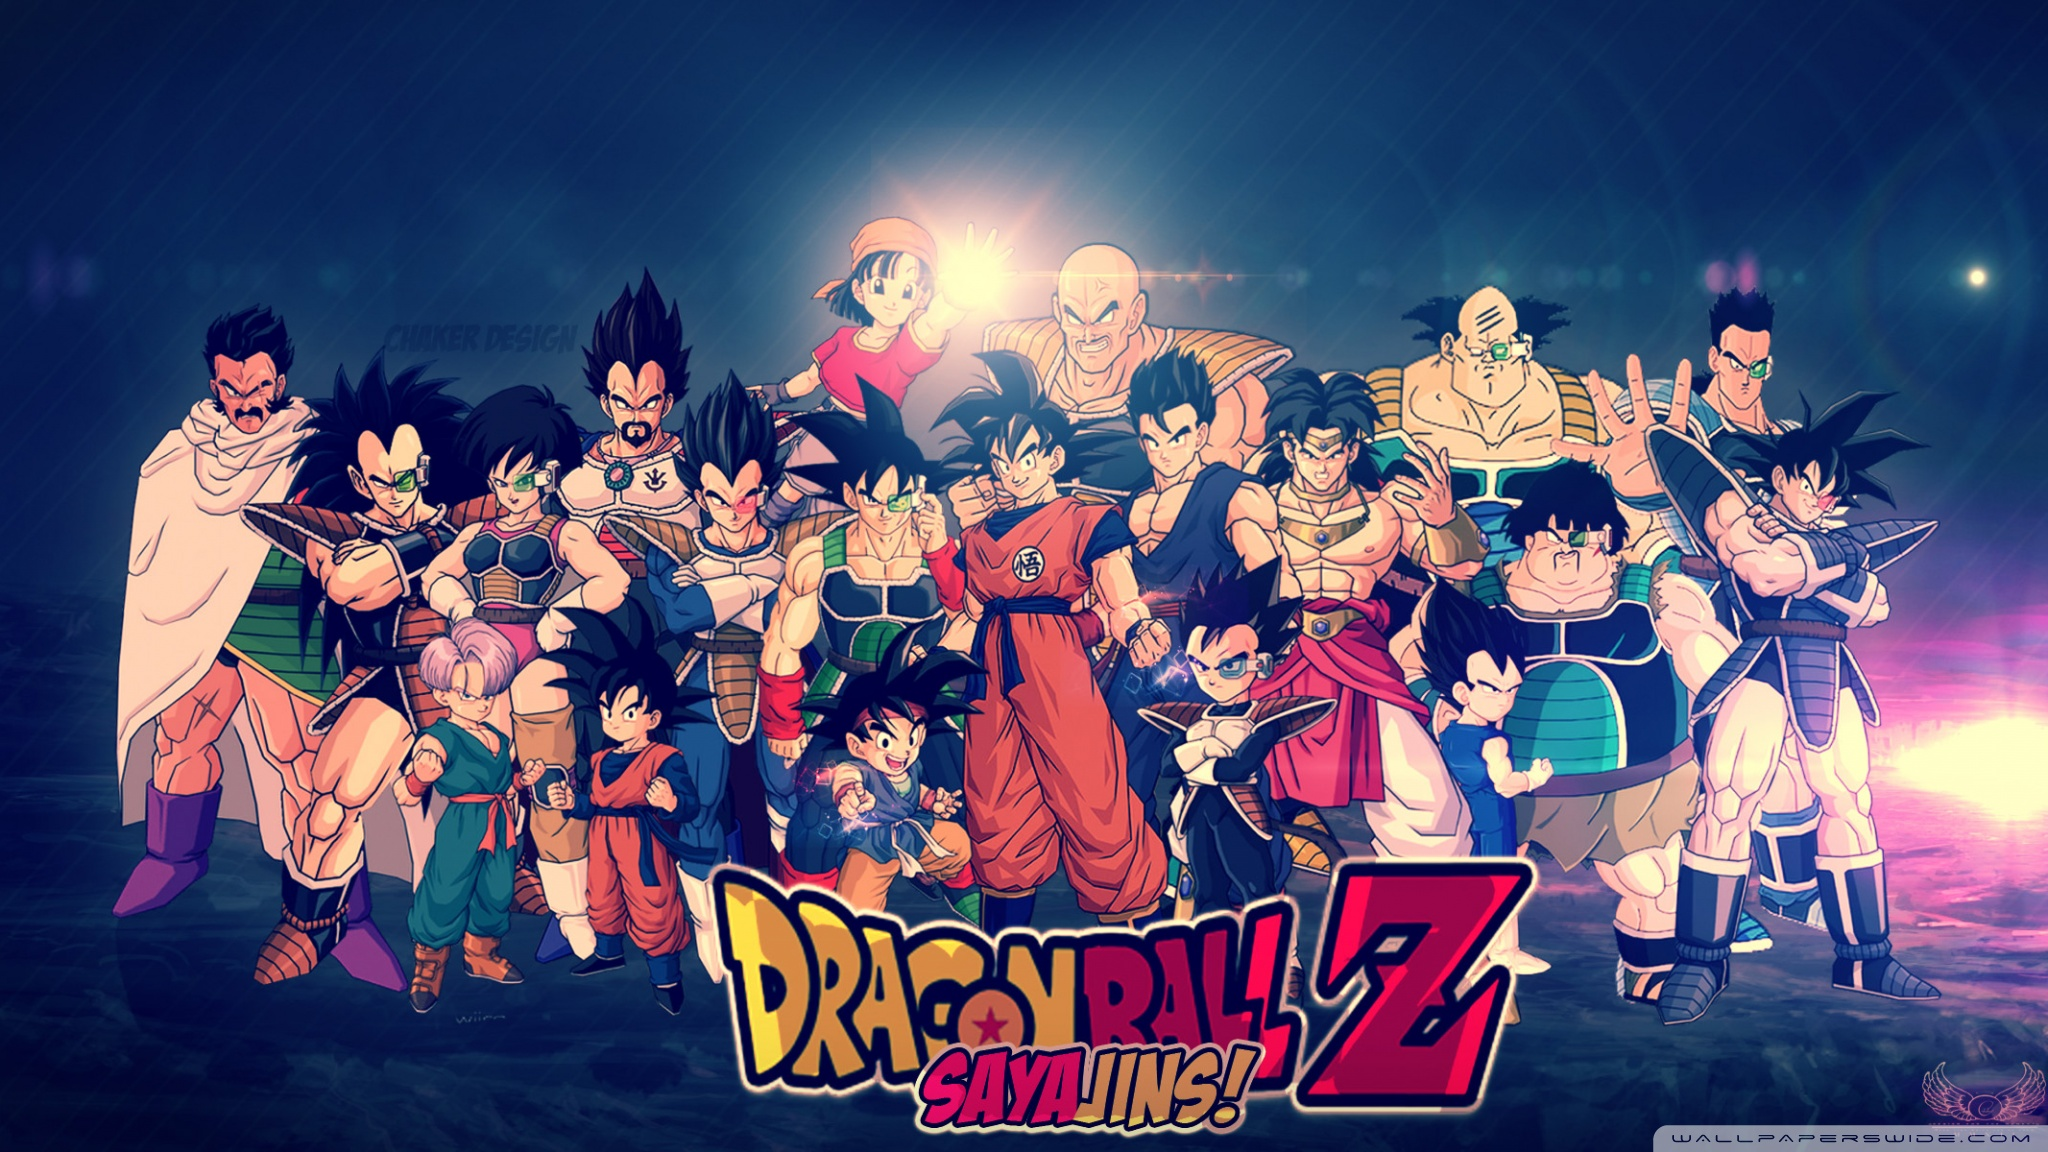 HD Dragon Ball Z Desktop Wallpapers Download 2048x1152